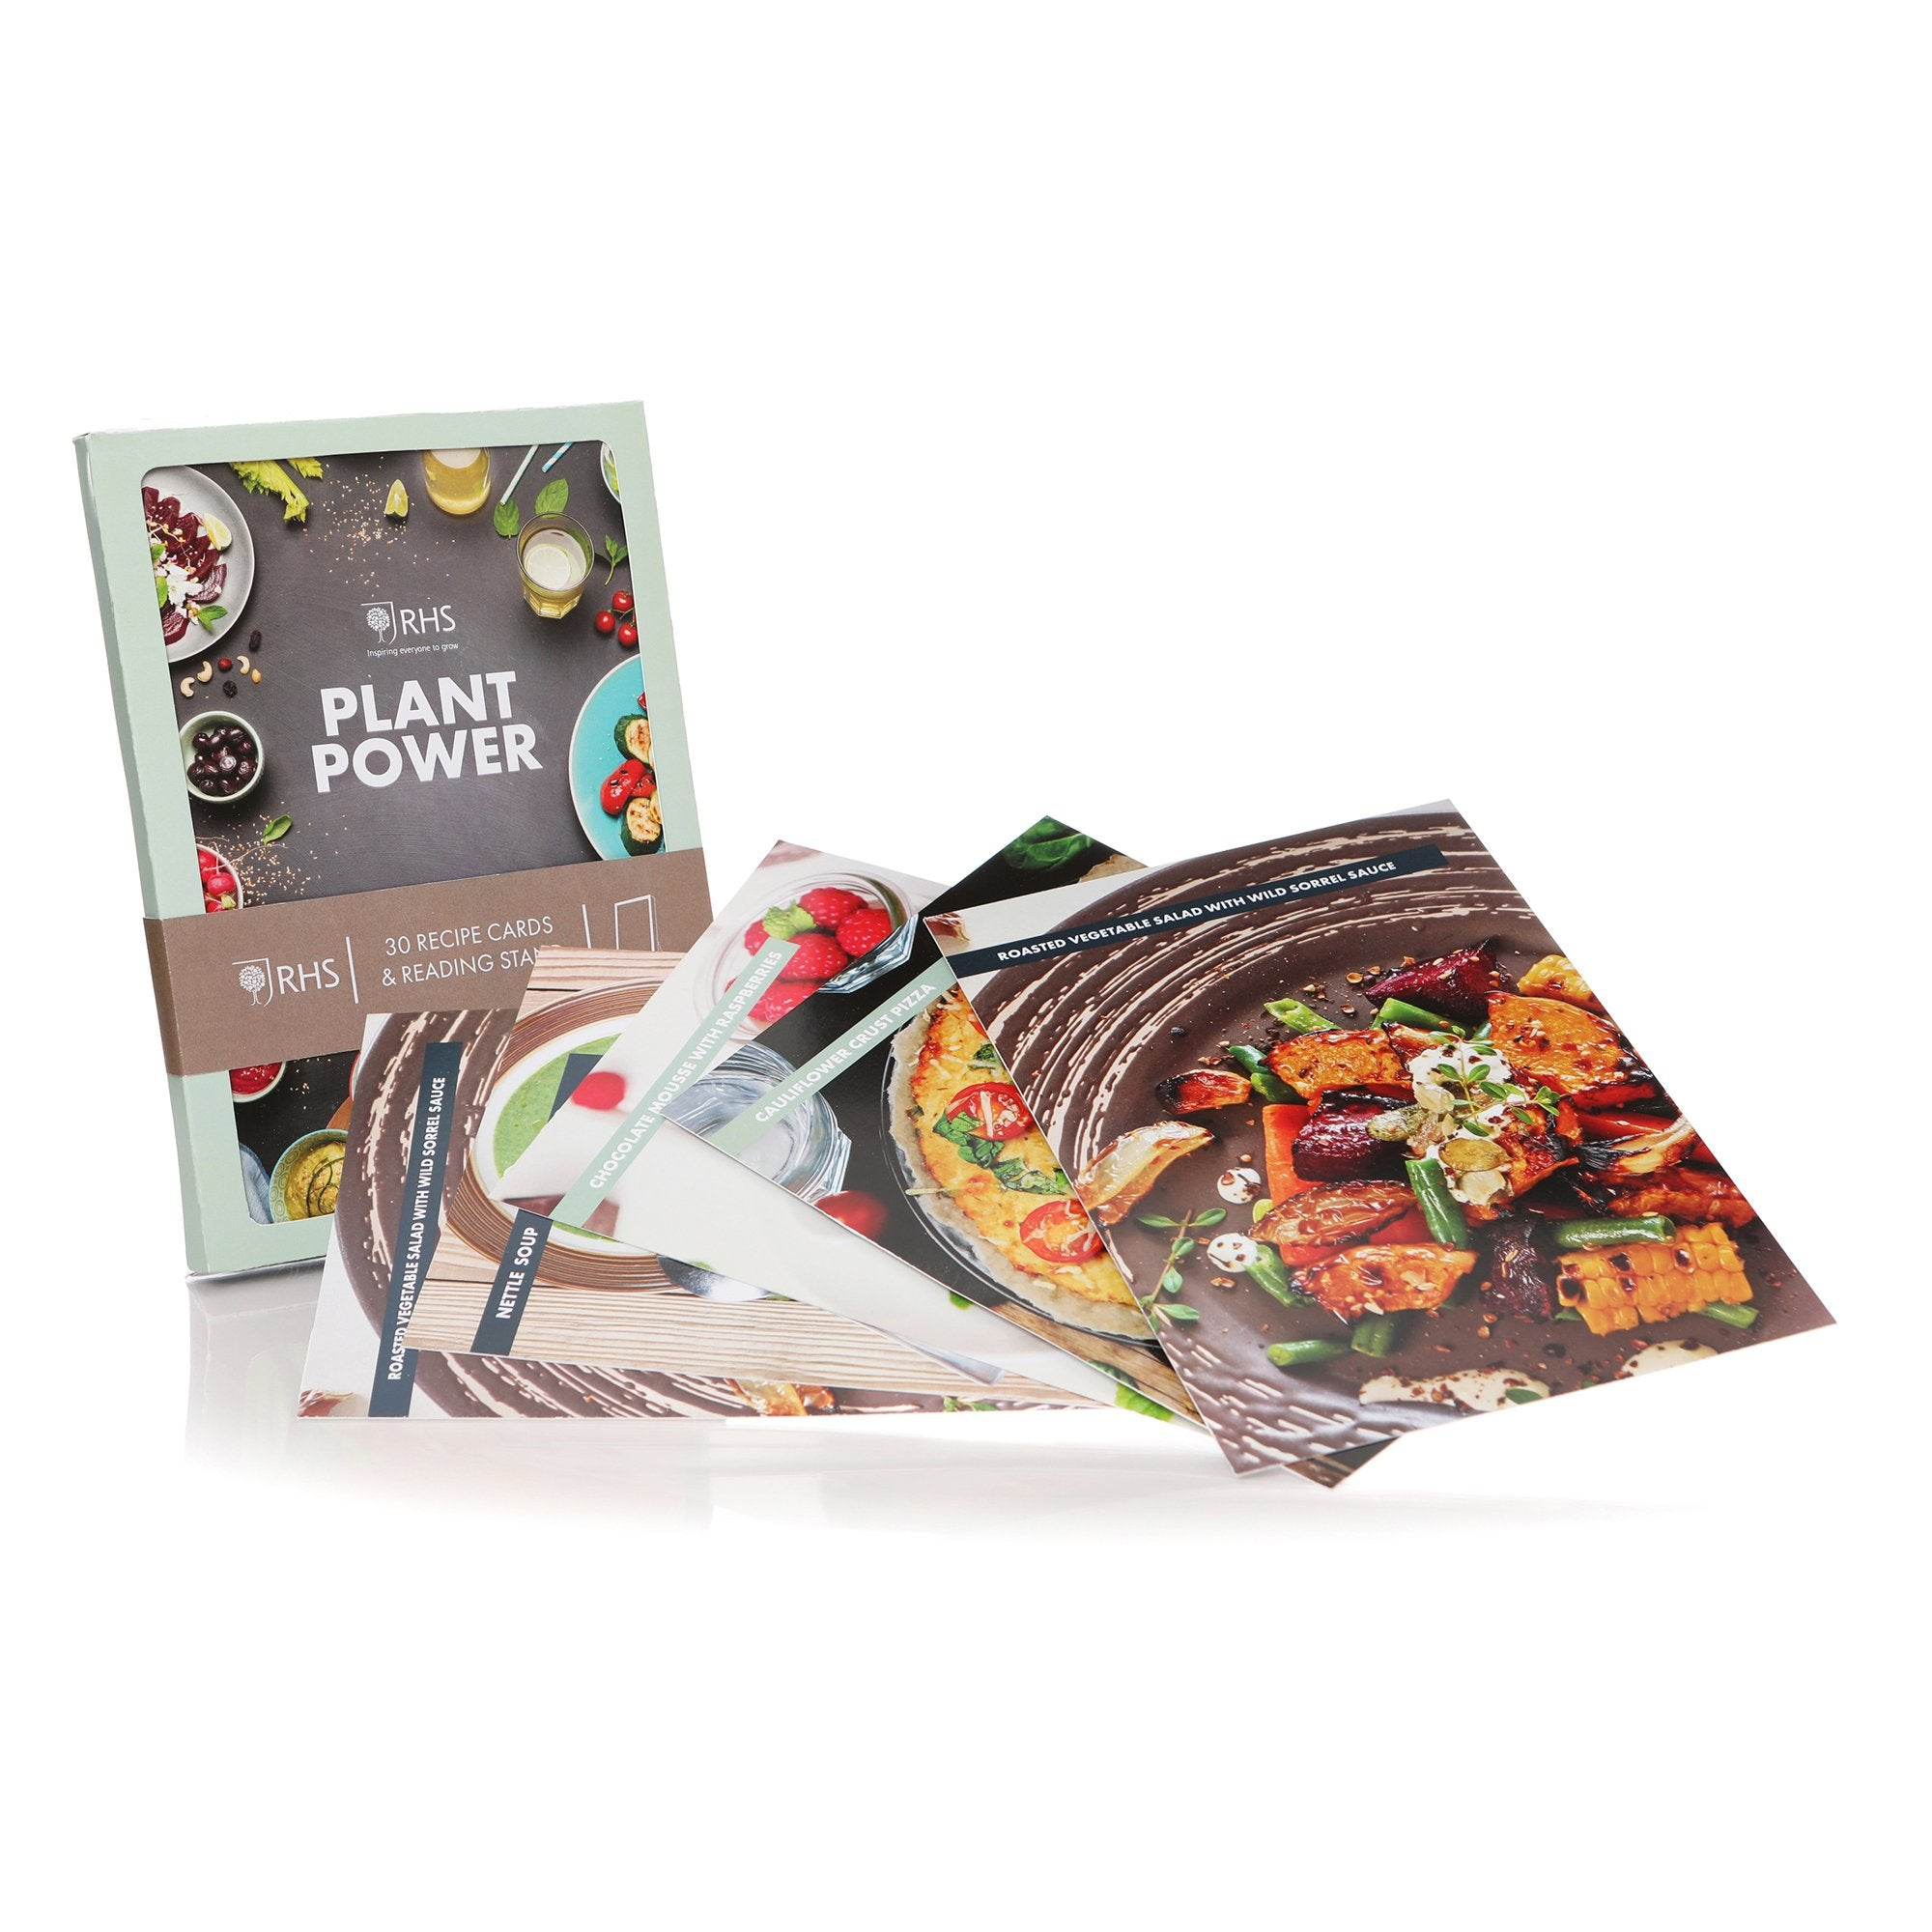 RHS Recipe Cards Box - Plant Power - Half Moon Bay US